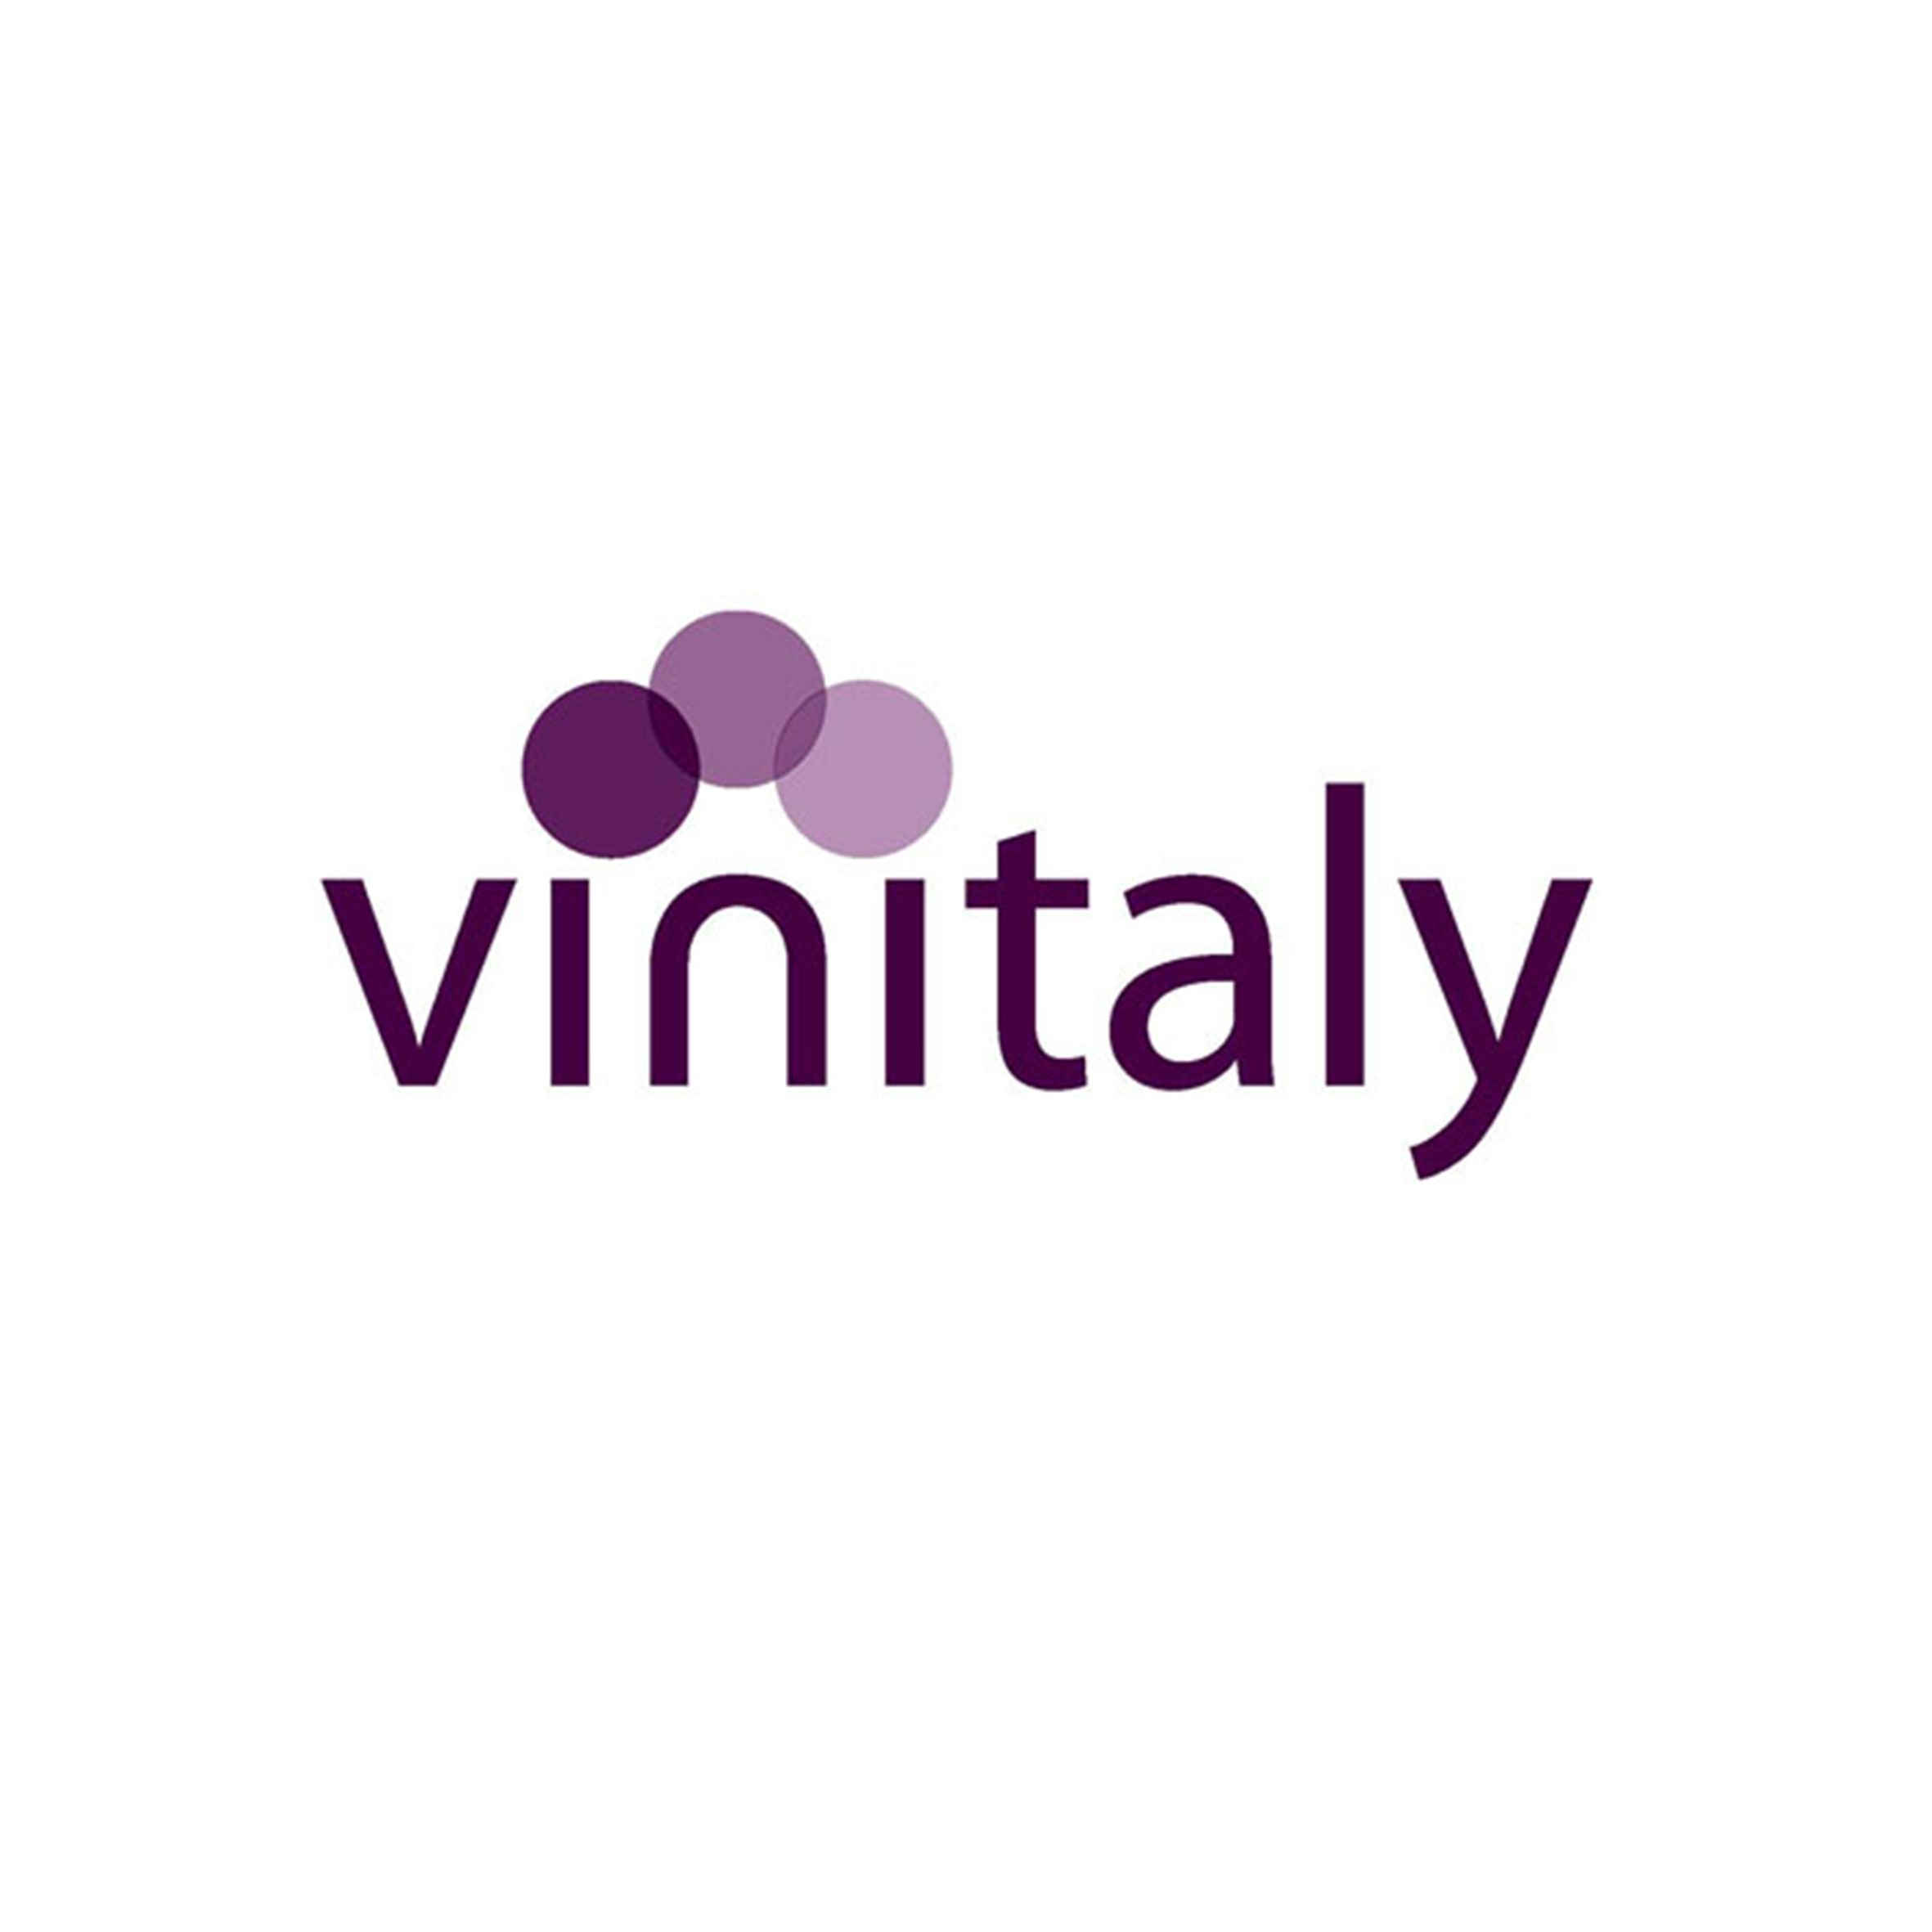 Vinitaly - Collaboration on a toasted bun